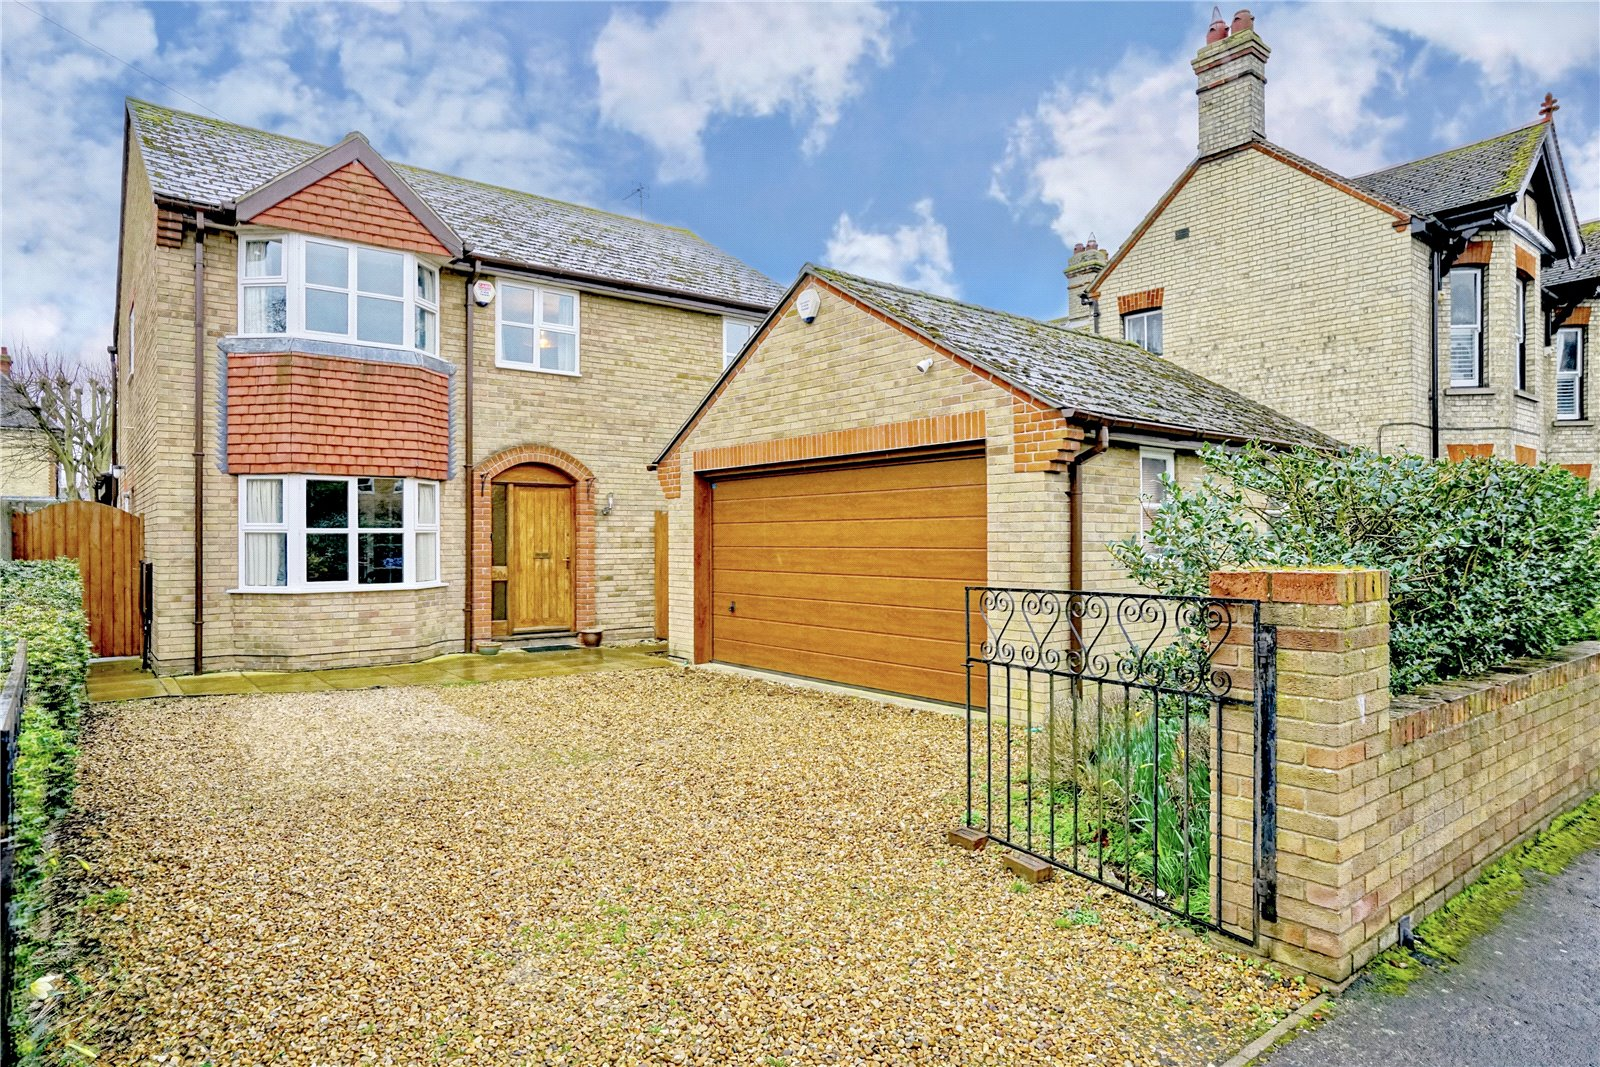 4 bed house for sale in St. Neots  - Property Image 1